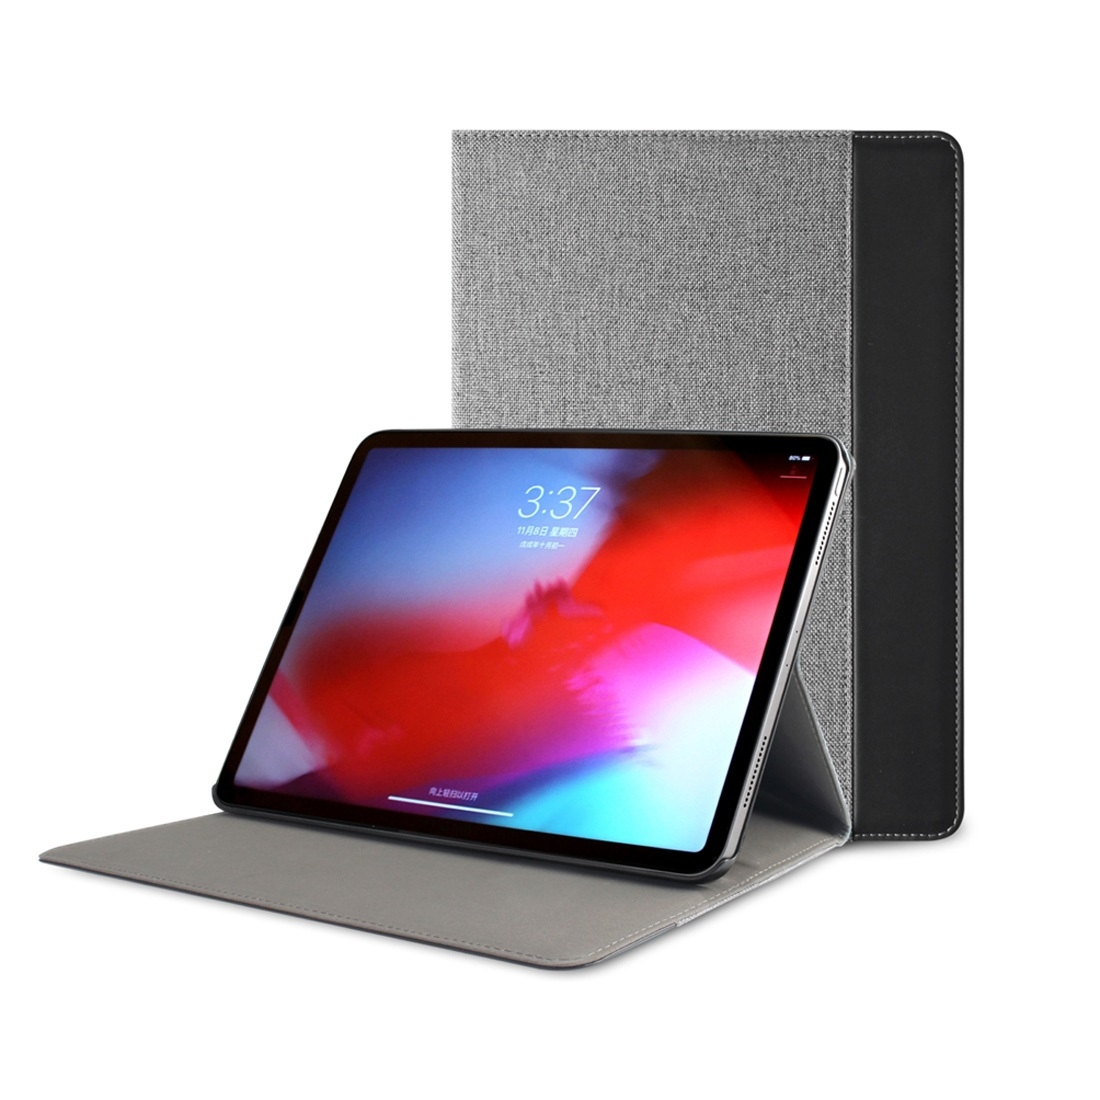 Canvas Leather iPad Pro 12.9 Case (2018), with Pen Holder